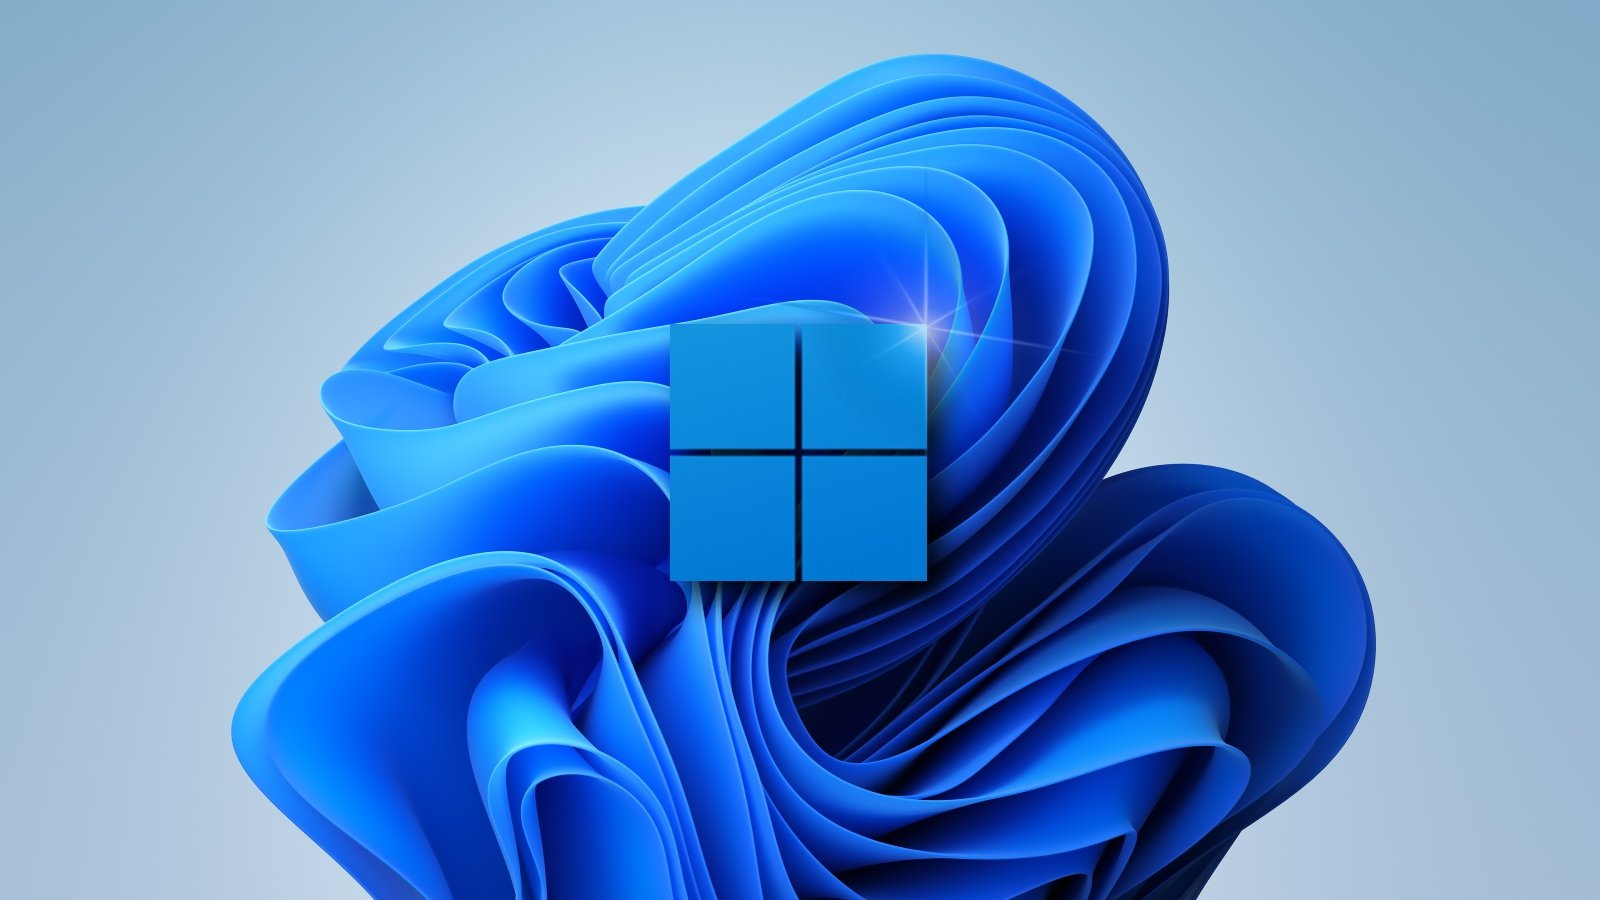 Windows 11 Leaked – What We Know So Far About Microsoft's New OS